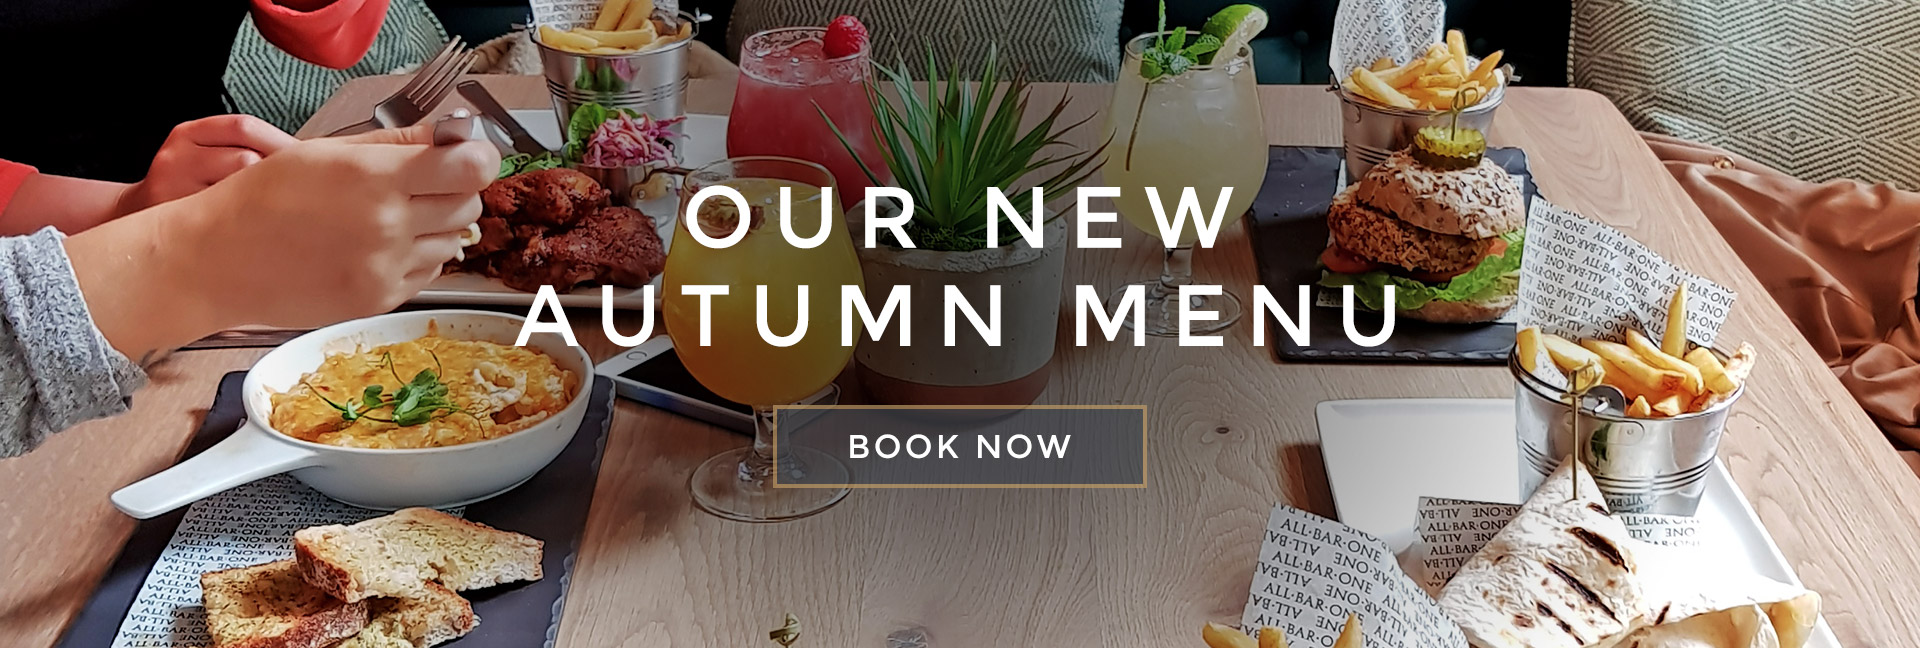 Our new Autumn menu at All Bar One Canary Wharf - Book now